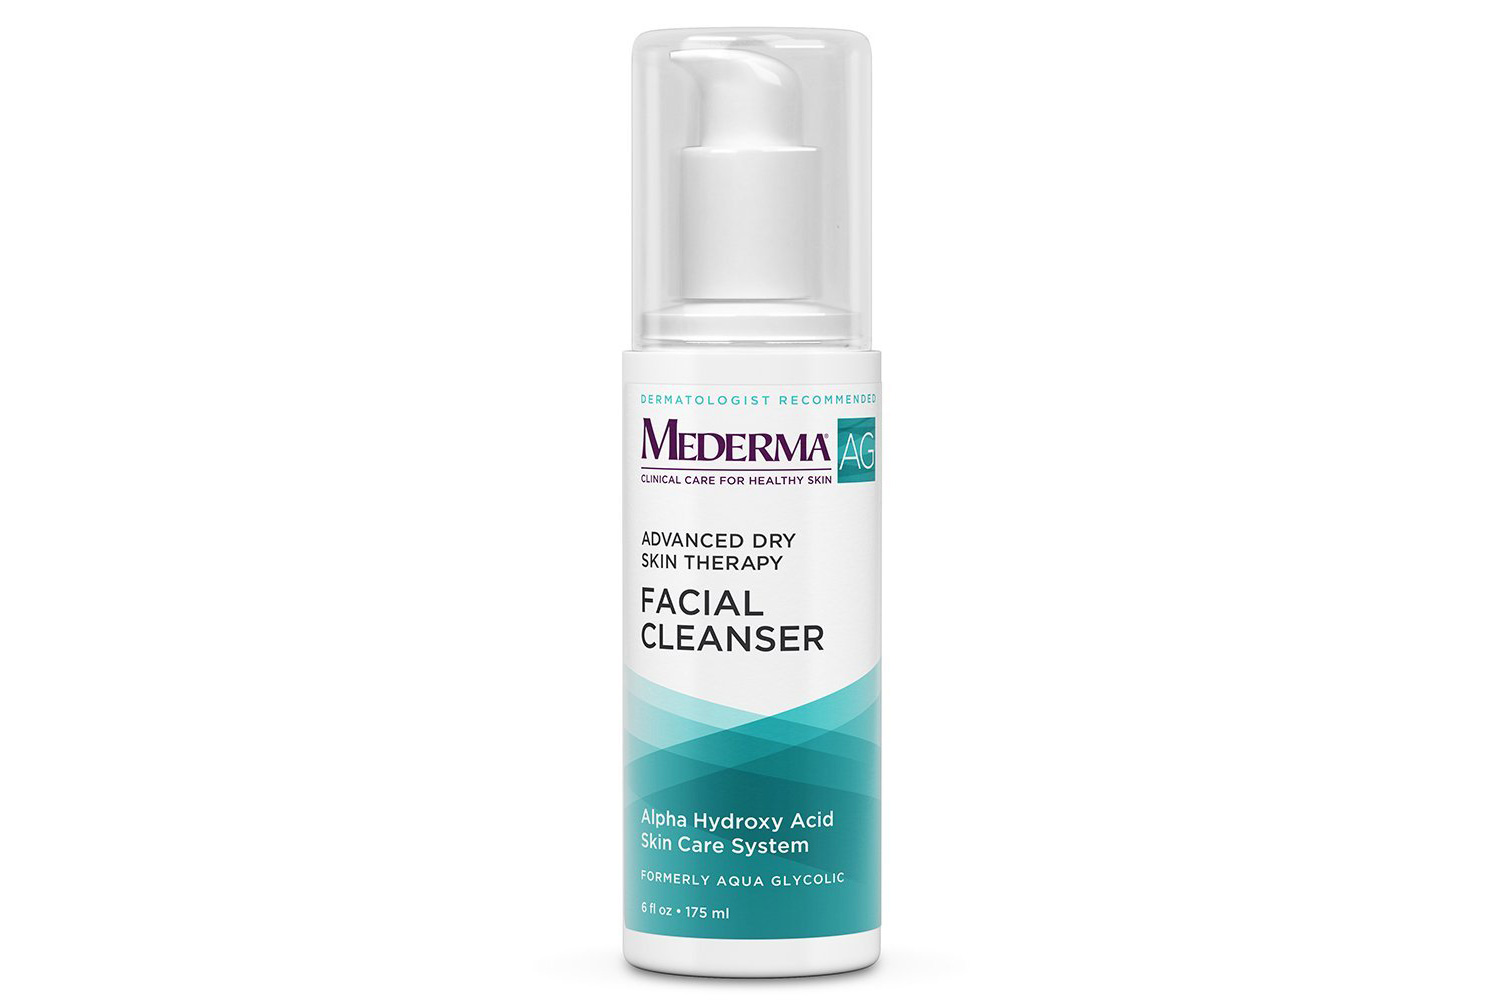 Mederma Aqua Glycolic Facial Cleanser